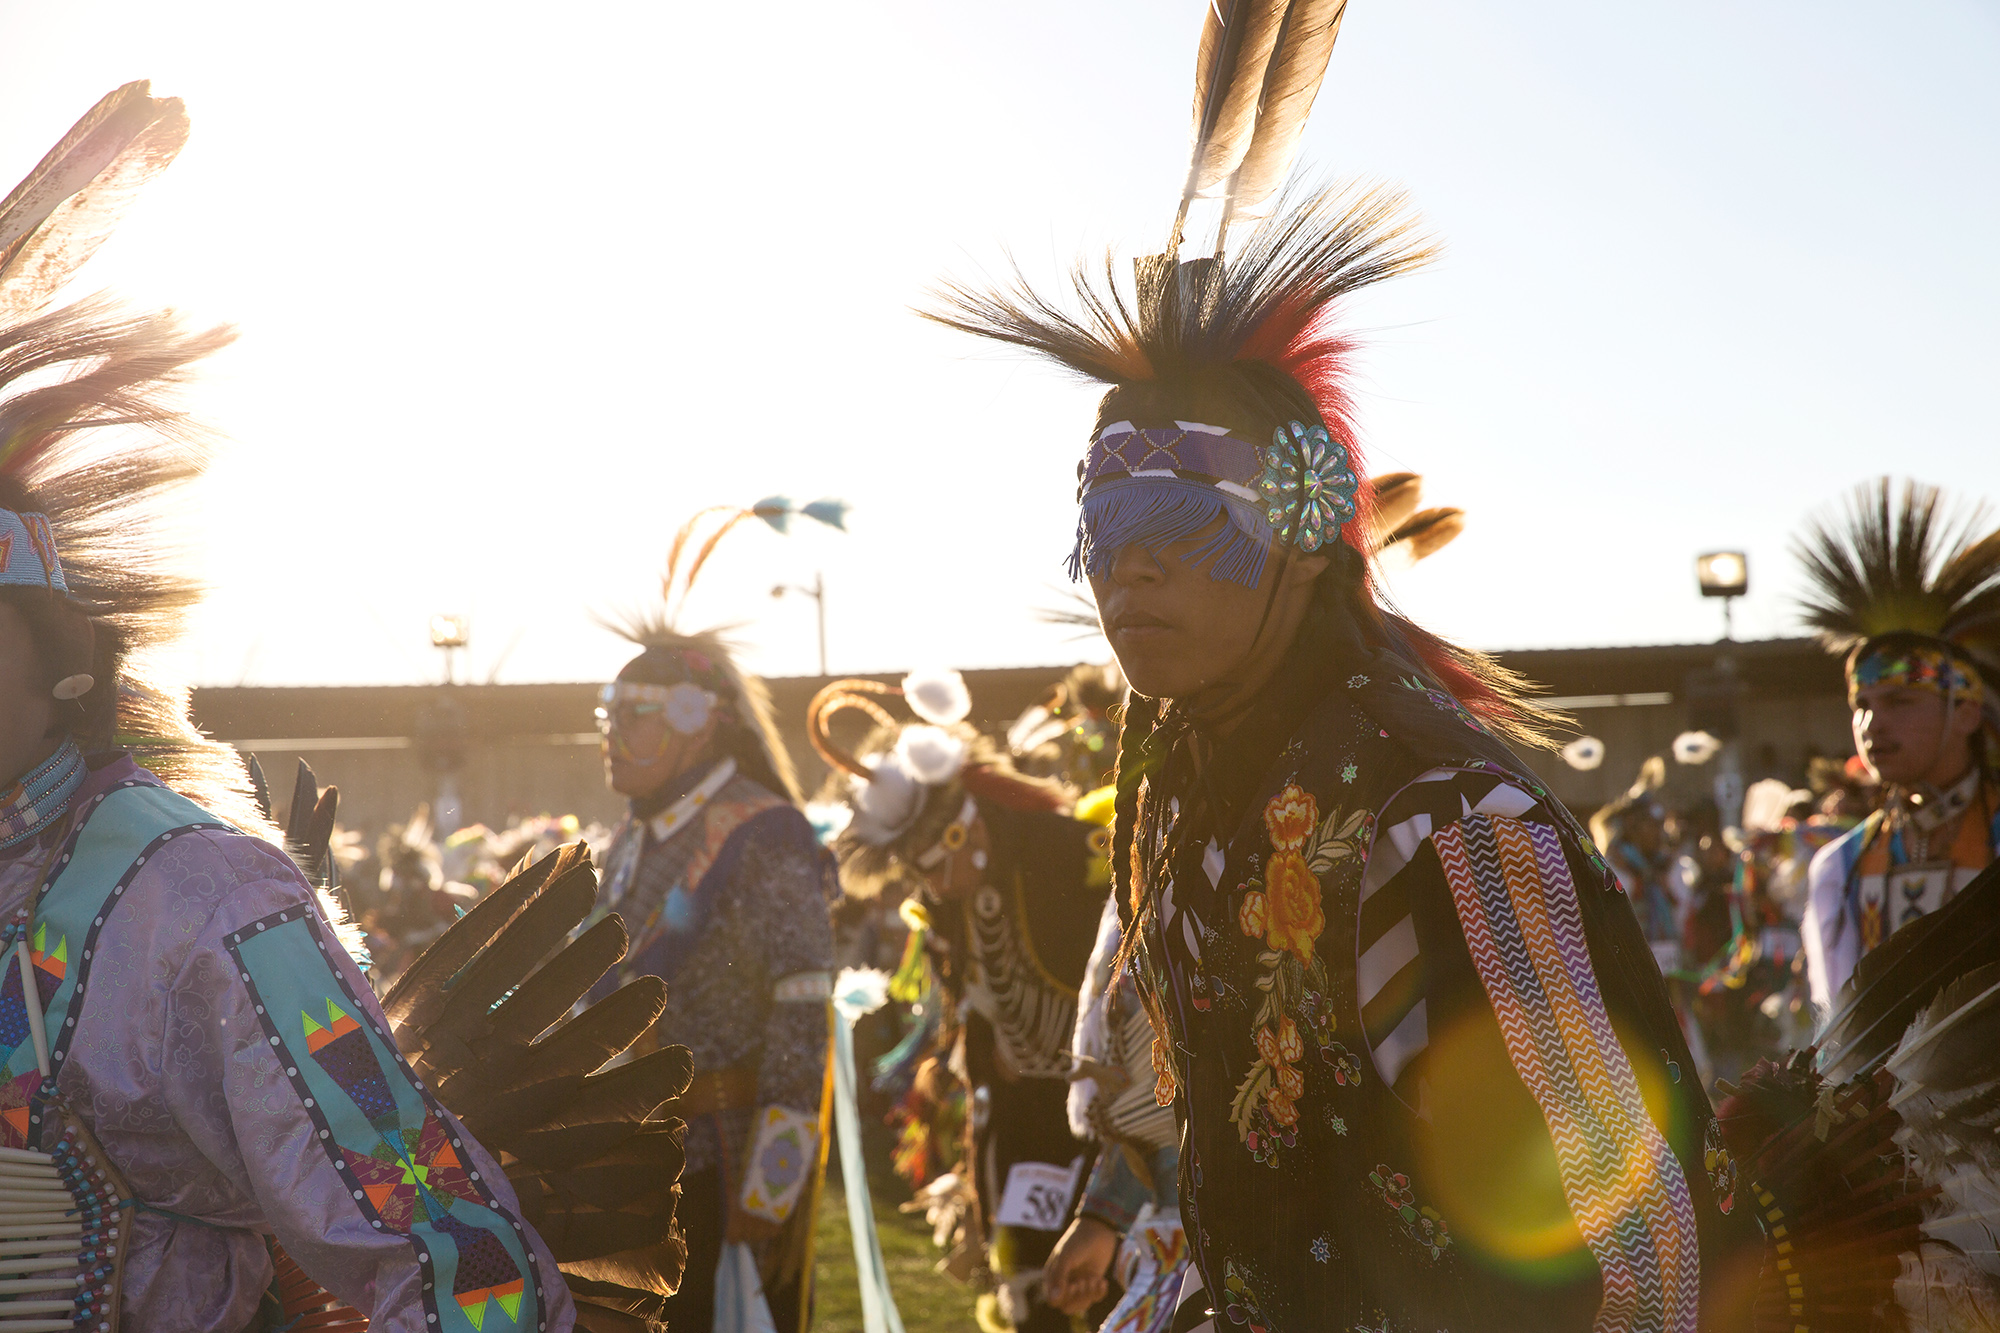 Dancers enter the arena during the Grand Entry at North American Indian Days in Browning, Montana.